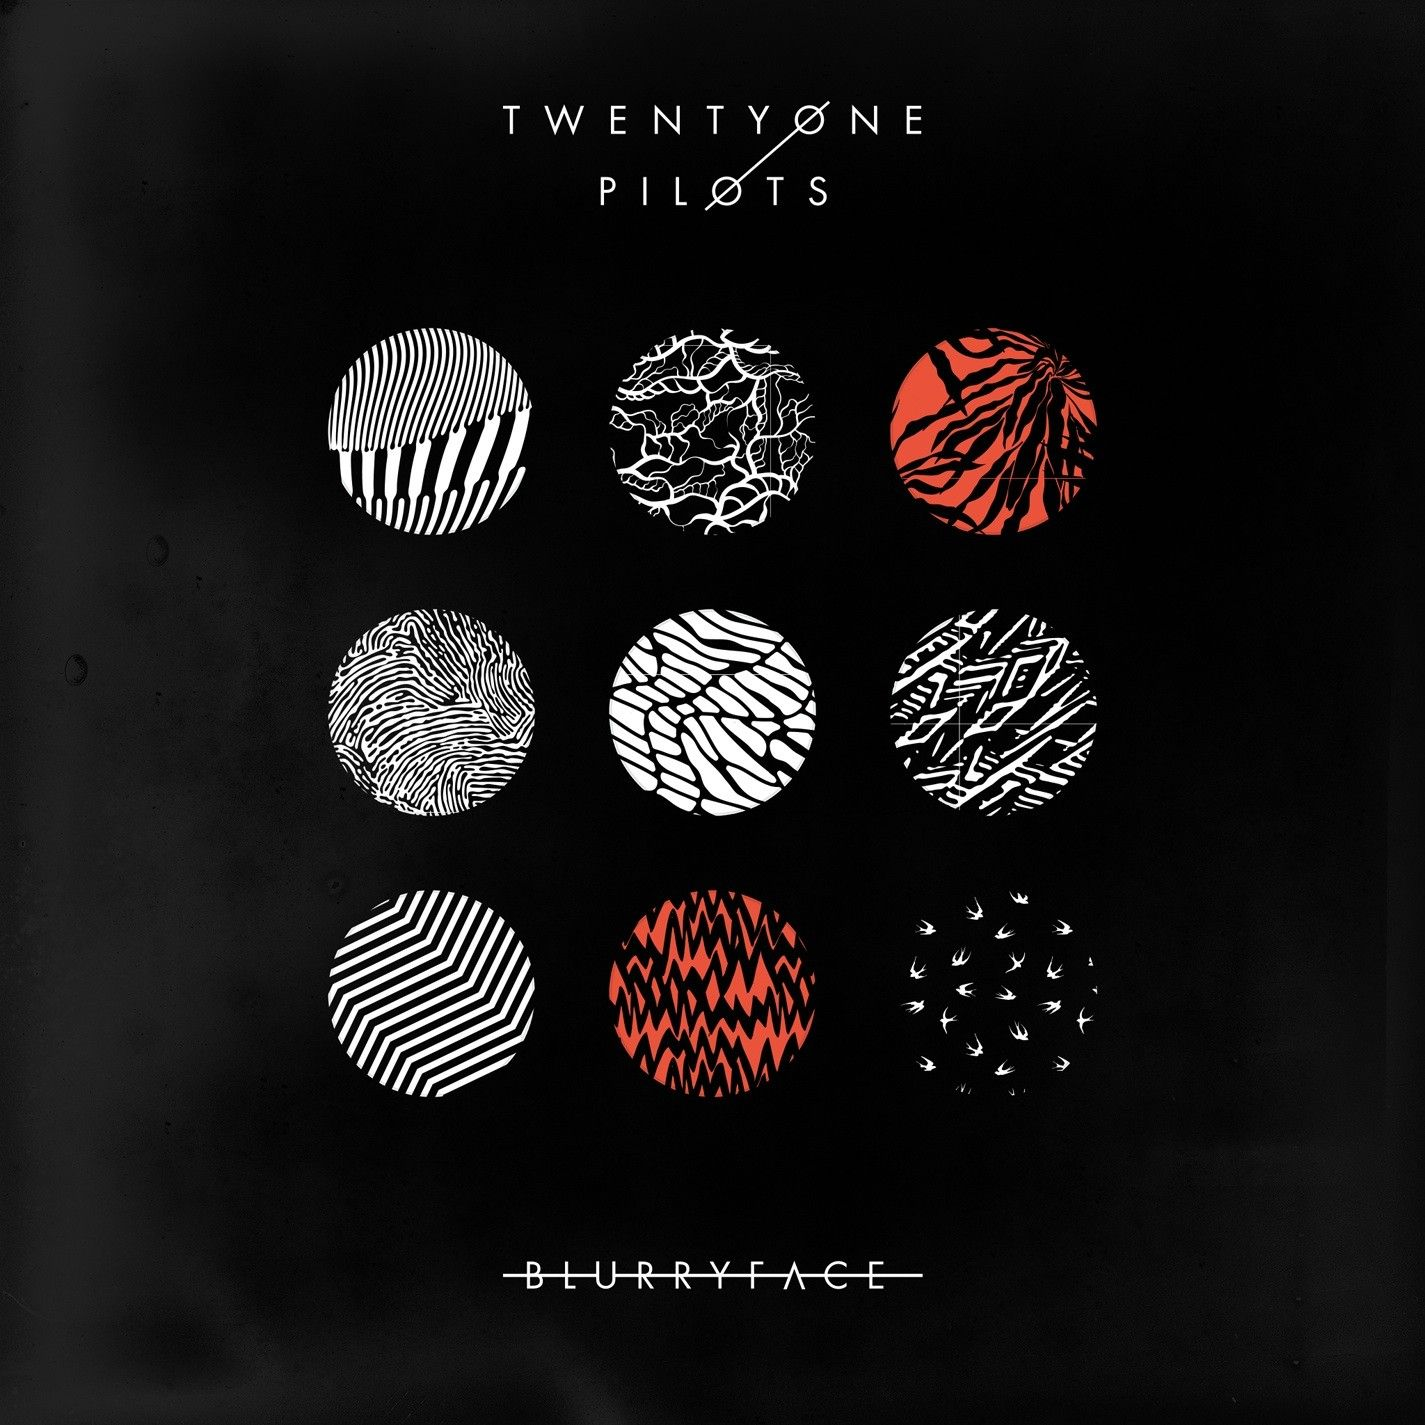 Twenty One Pilots - Blurryface album cover